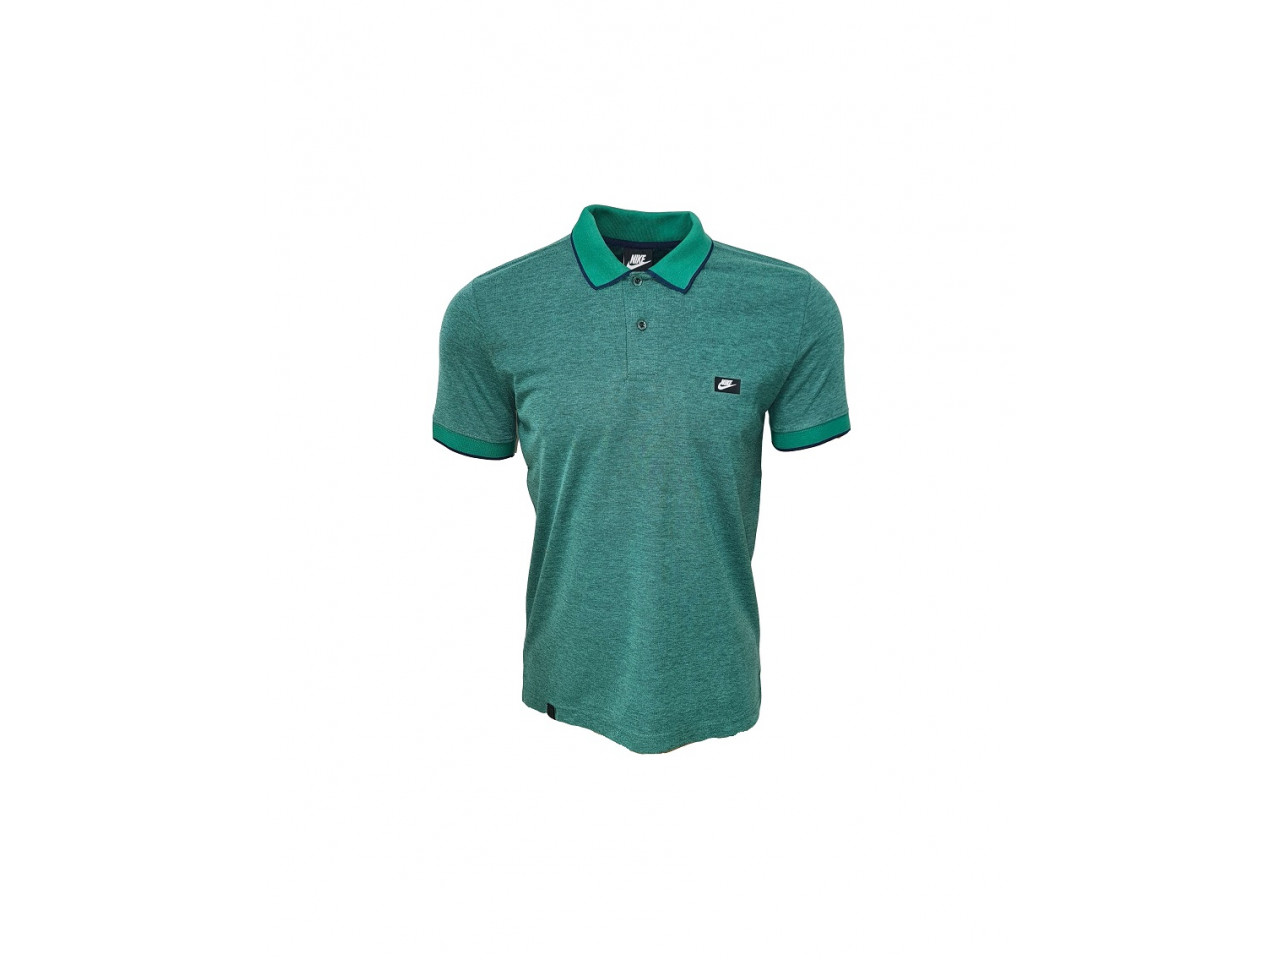 Nike Polo T-Shirt  Green